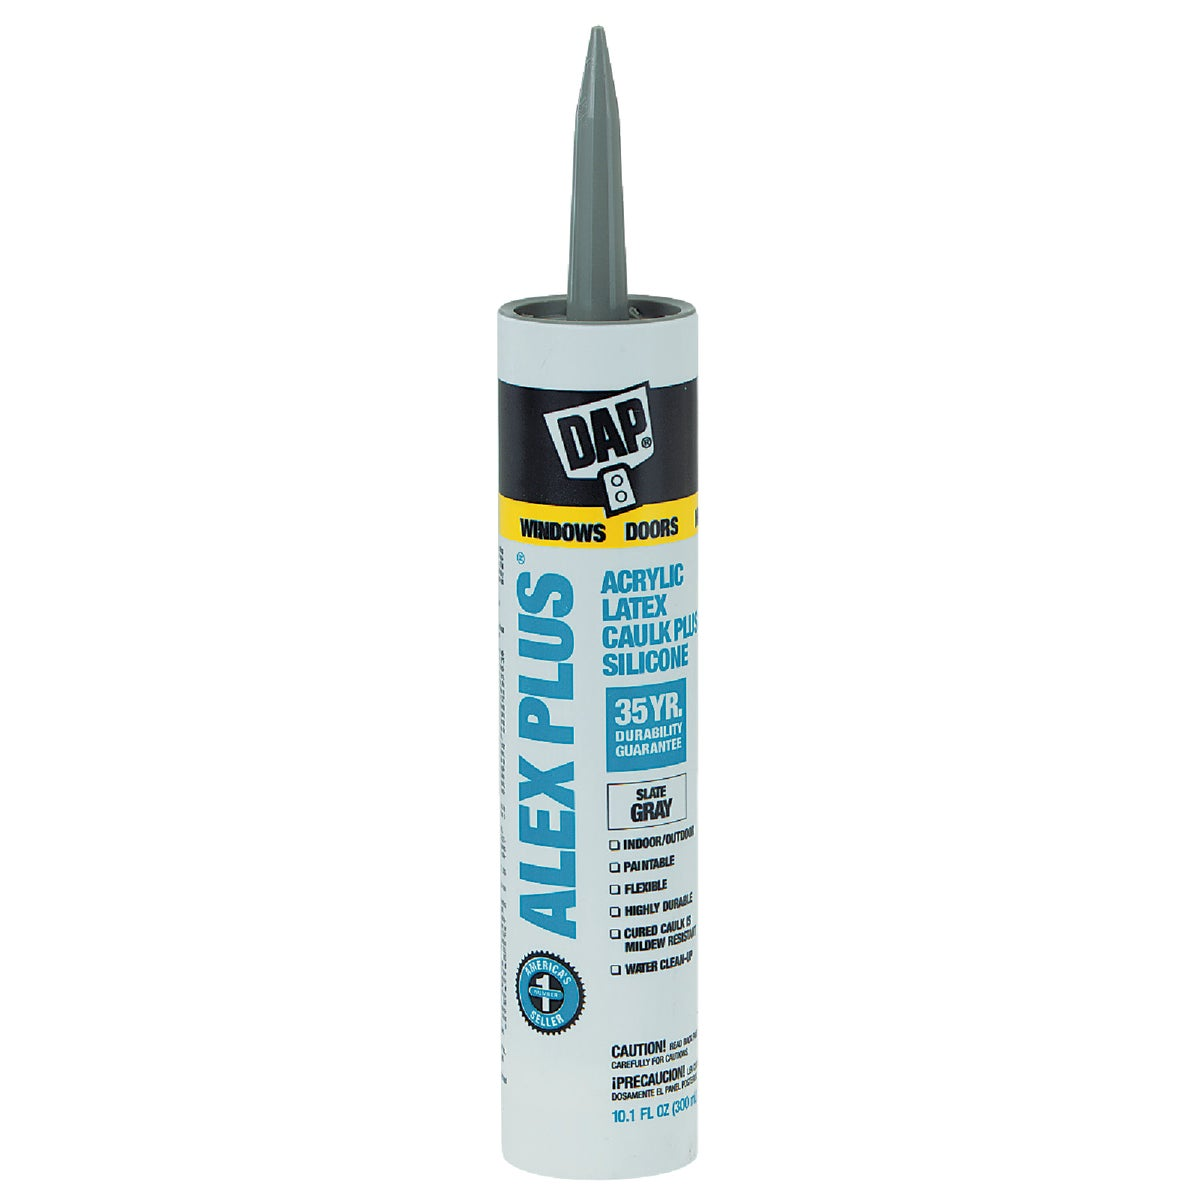 SLT GRAY ALEX PLUS CAULK - 18118 by Dap Inc